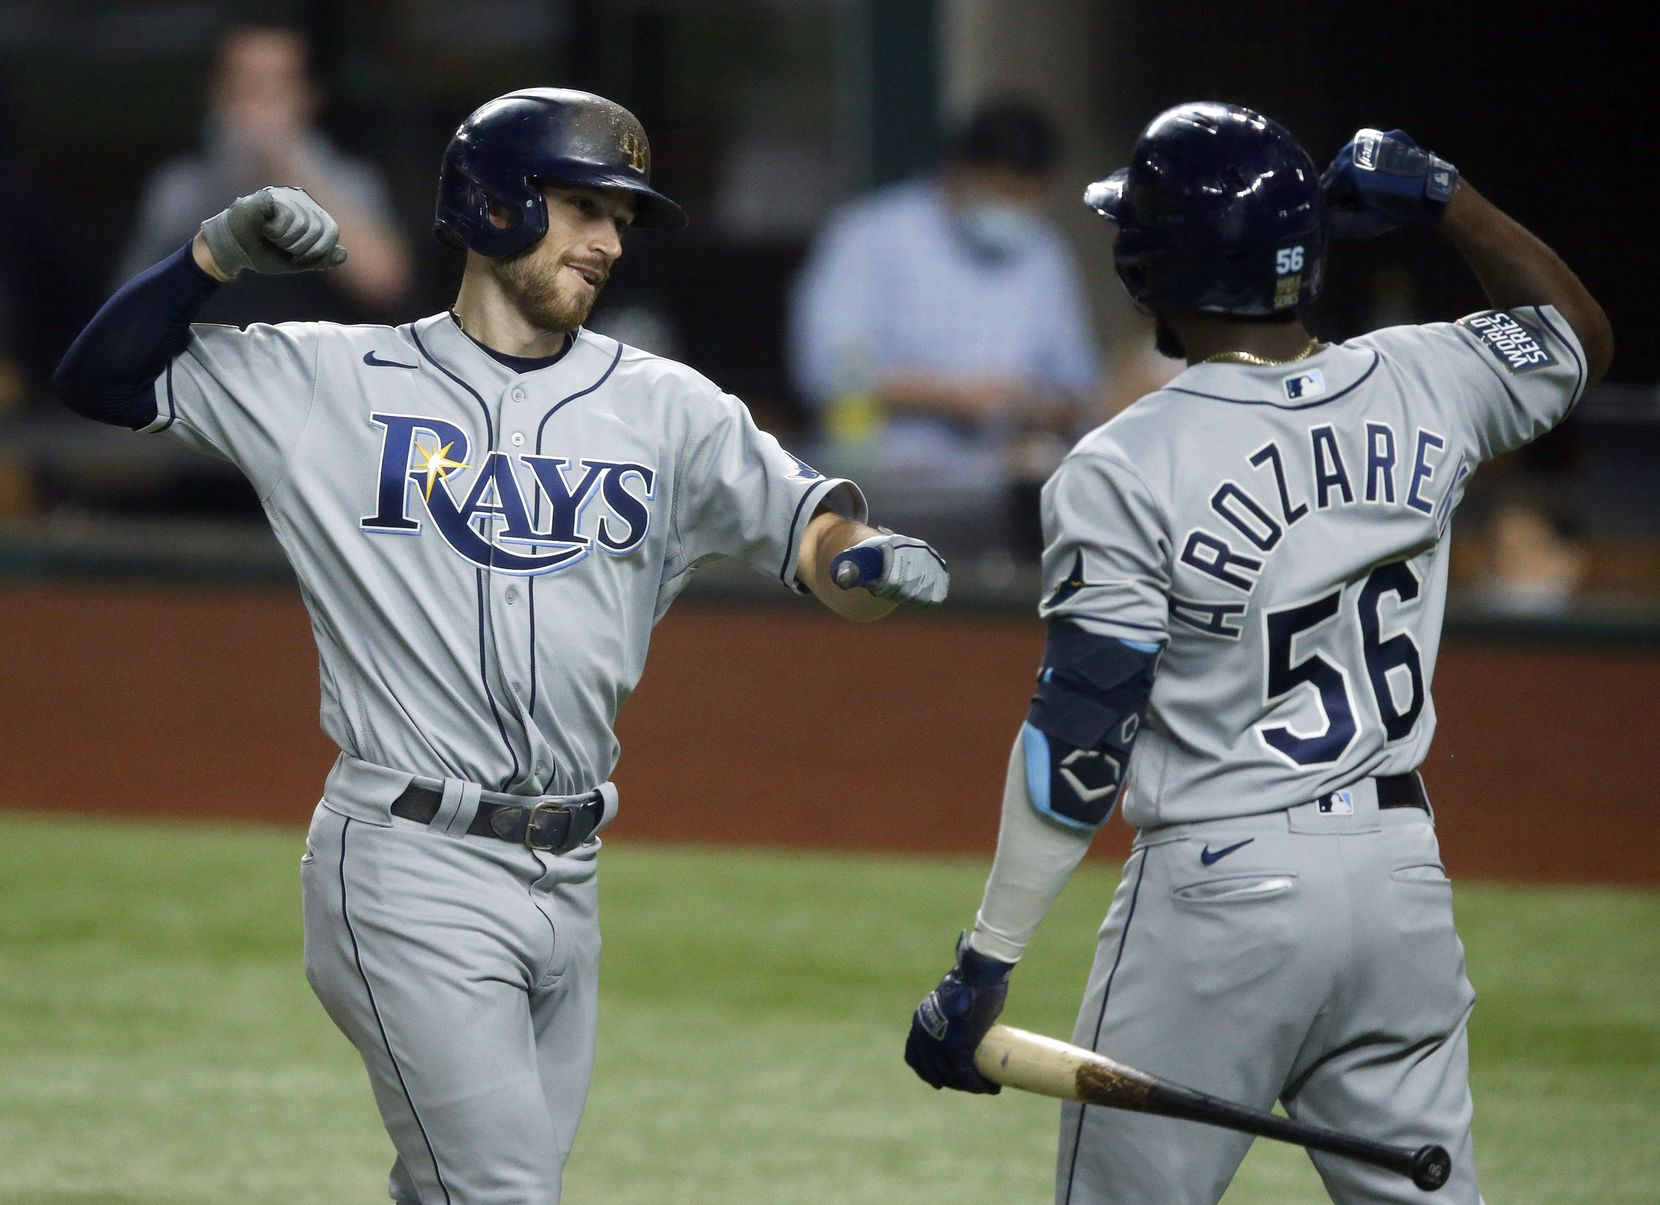 Tampa Bay Rays Brandon Lowe (8) is congratulated on his solo home run by teammate Randy Arozarena (56) during the first inning in Game 2 of the World Series at Globe Life Field in Arlington, Wednesday, October 21, 2020. (Tom Fox/The Dallas Morning News)